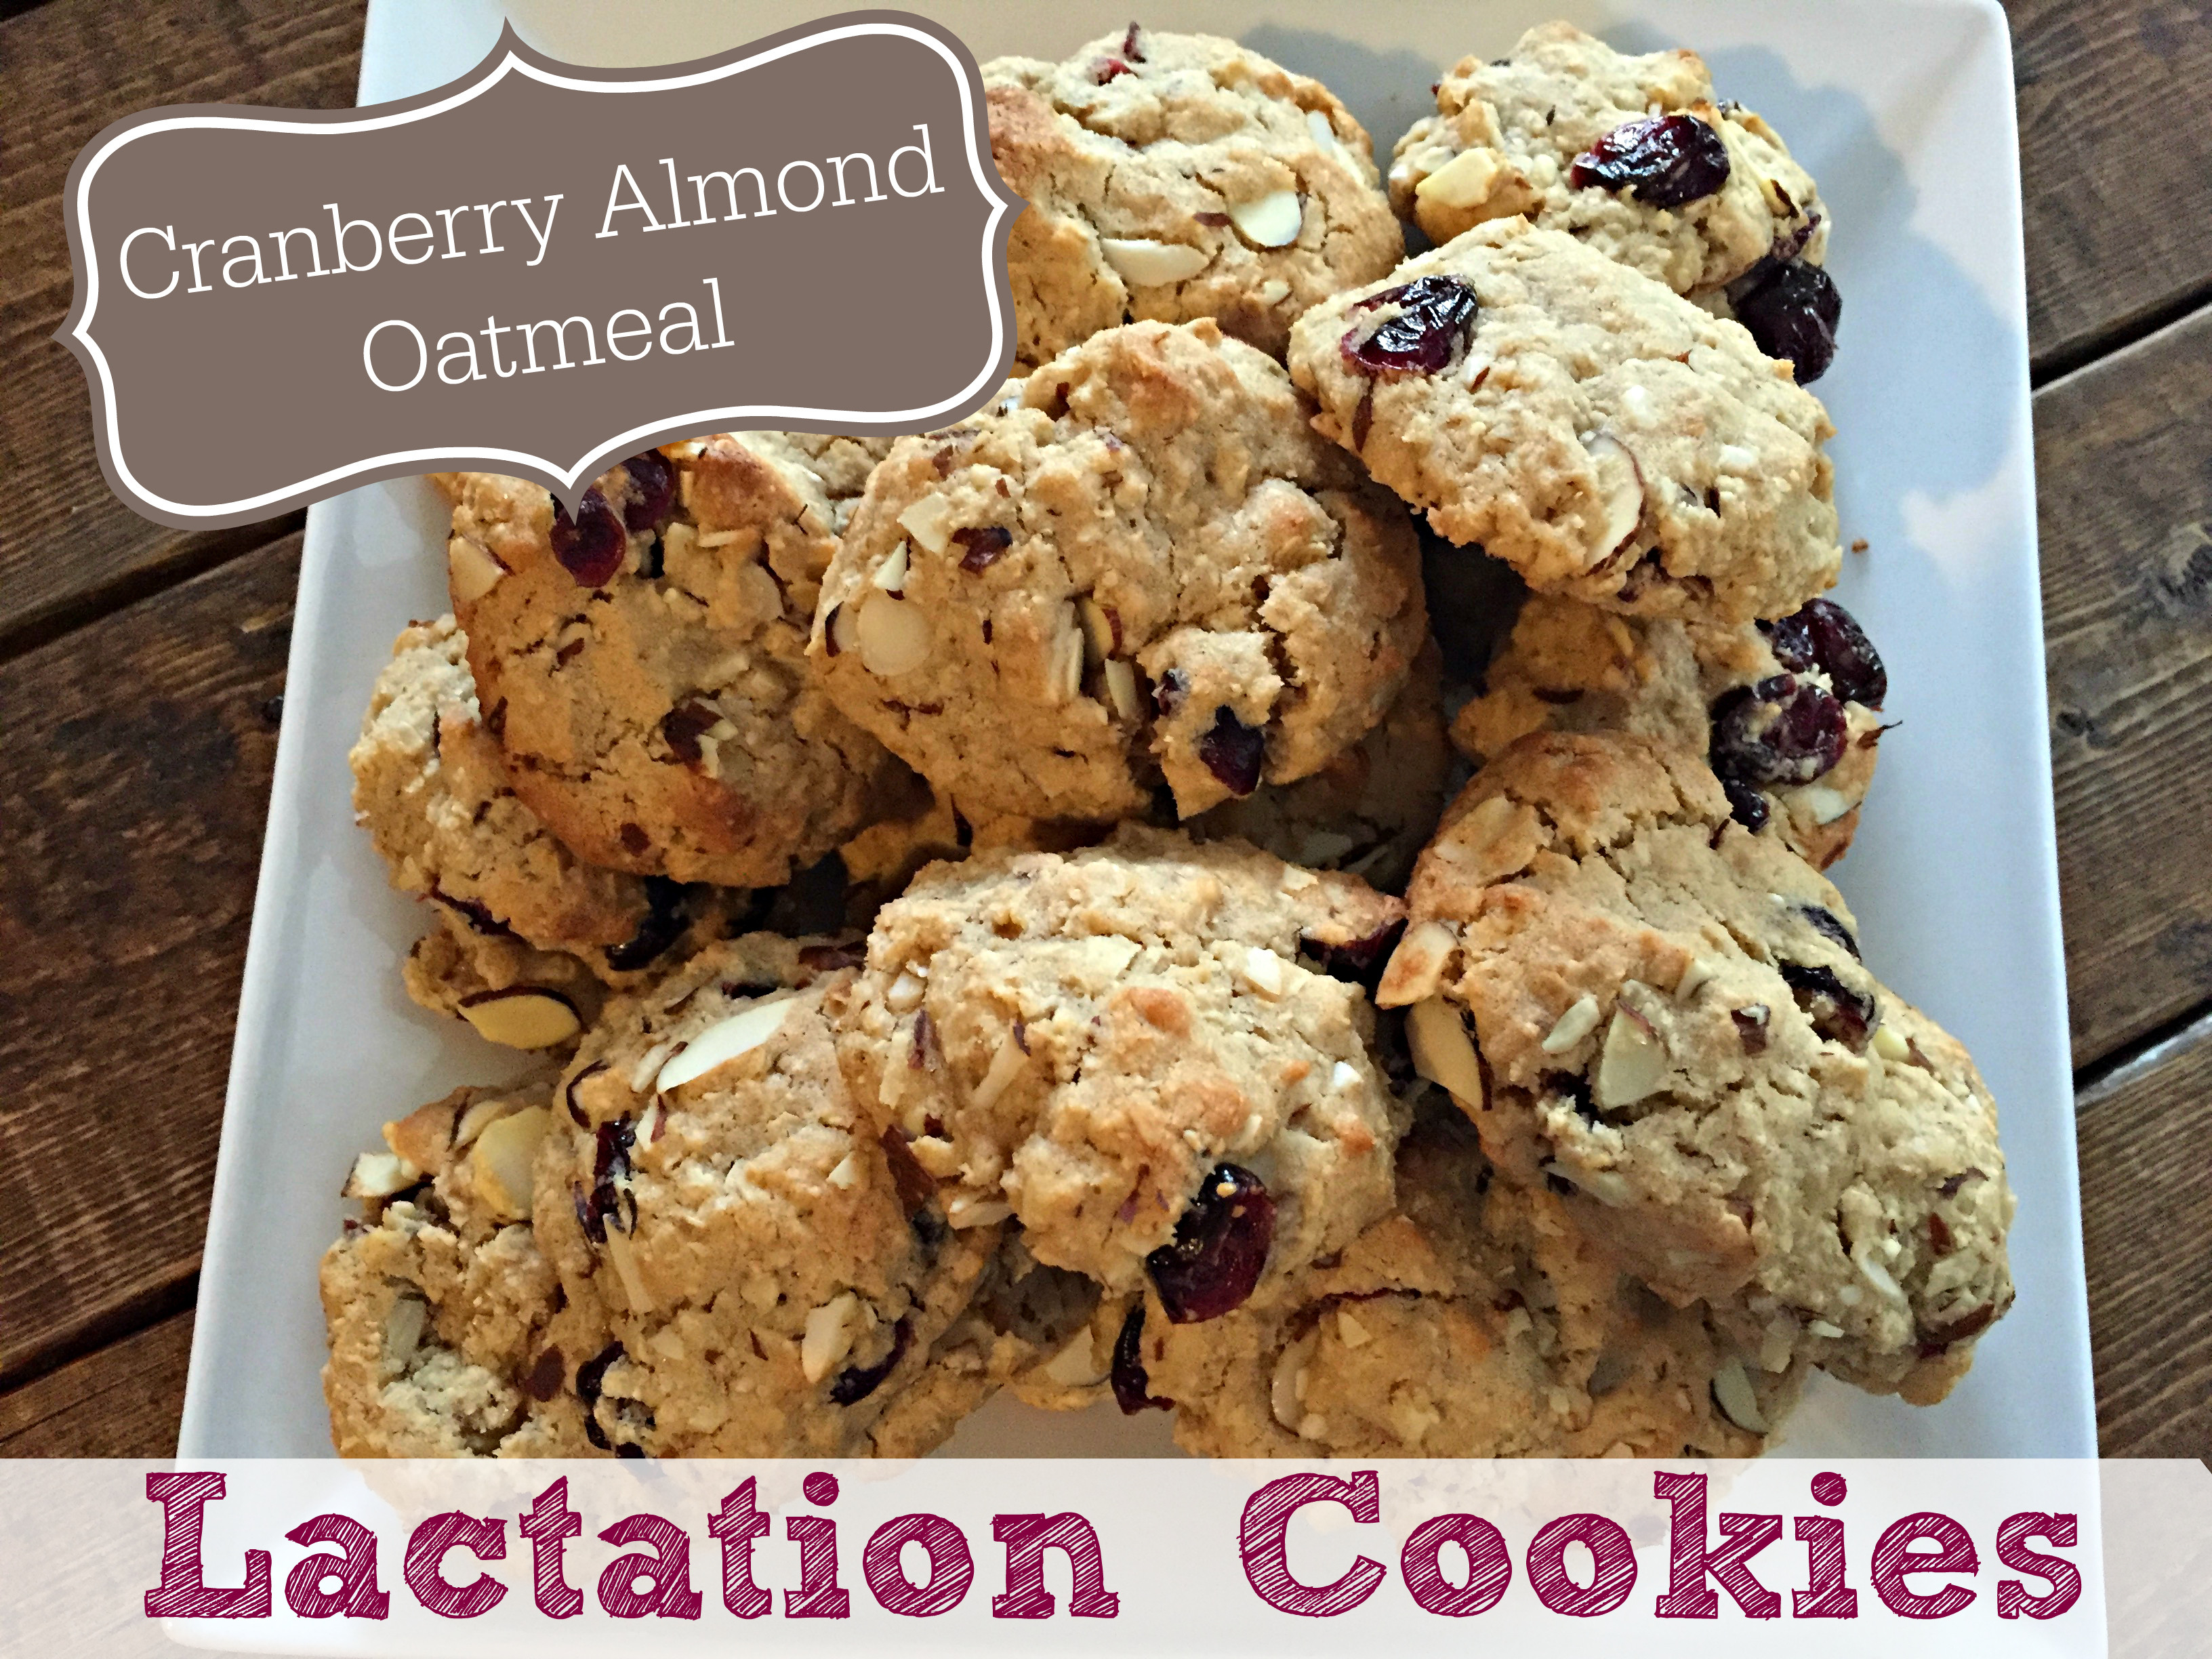 Healthy Lactation Cookies Recipe  Cranberry Almond Oatmeal Lactation Cookies